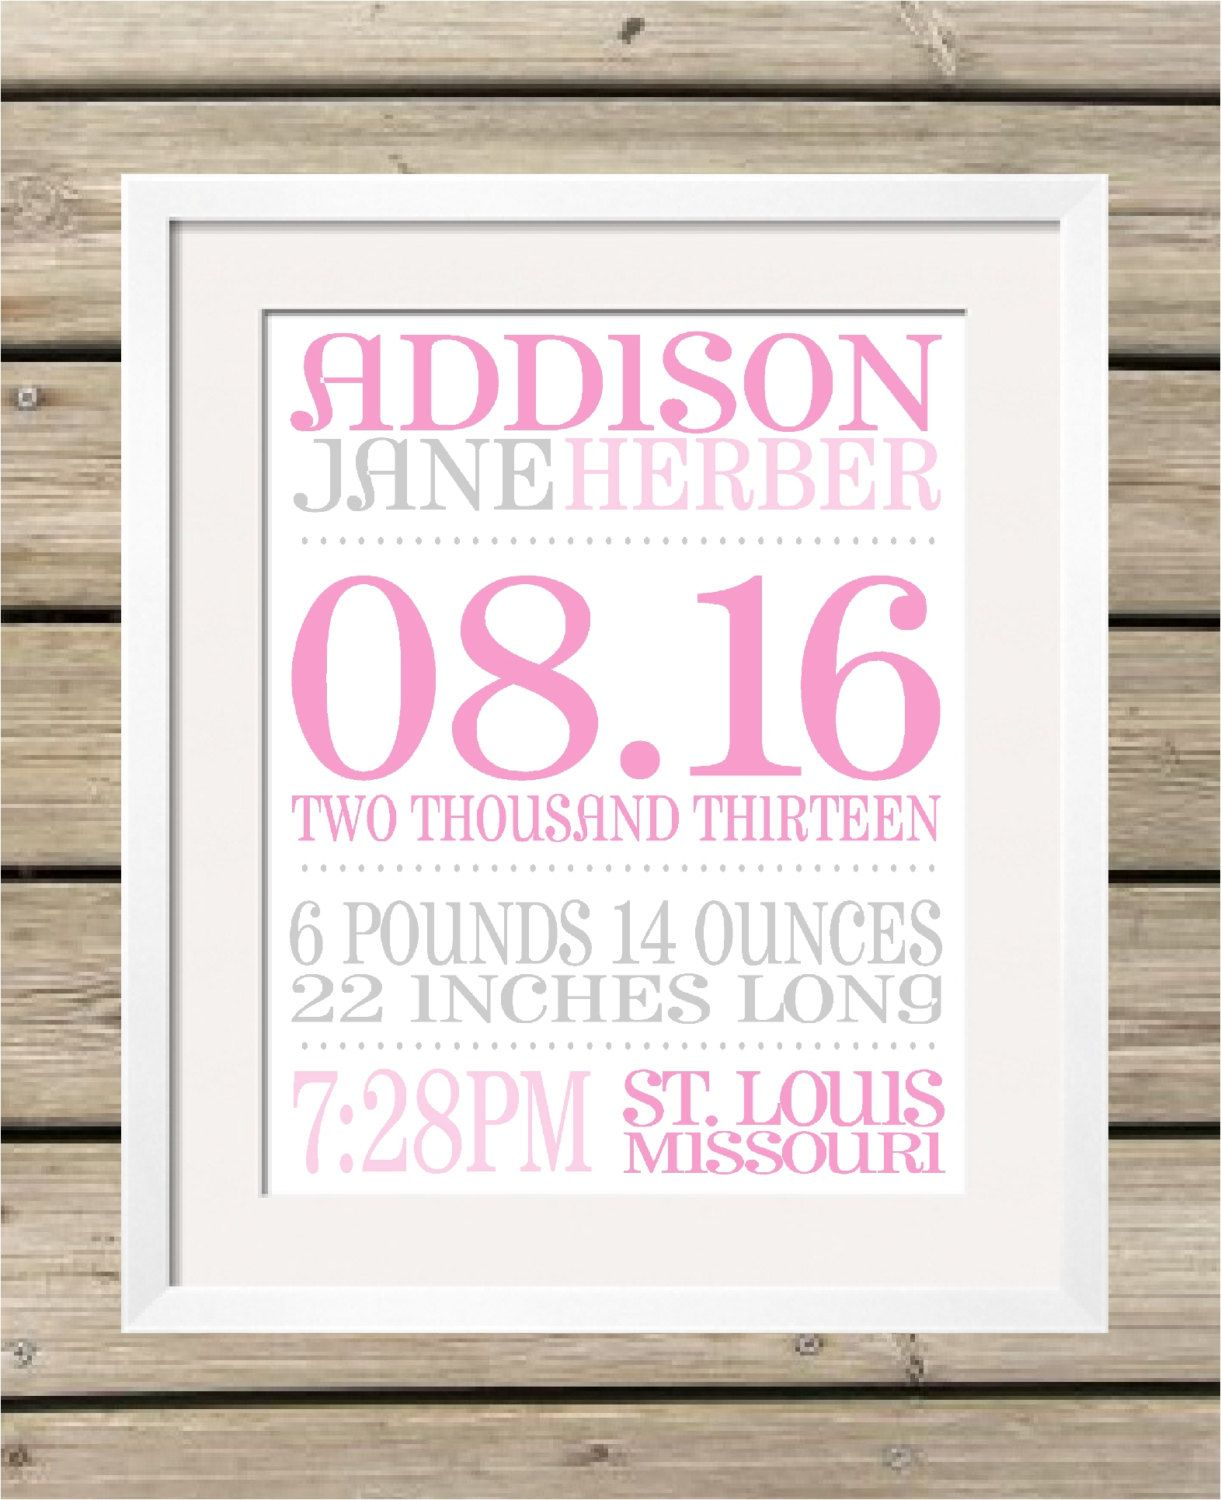 Personalized Baby Birth Announcement Art Print - Baby Stats - Personalized Baby Gift - Baby Girl - Baby Boy - Baptism Gift - Nursery Decor by KoalaPrintworks on Etsy https://www.etsy.com/listing/108689764/personalized-baby-birth-announcement-art